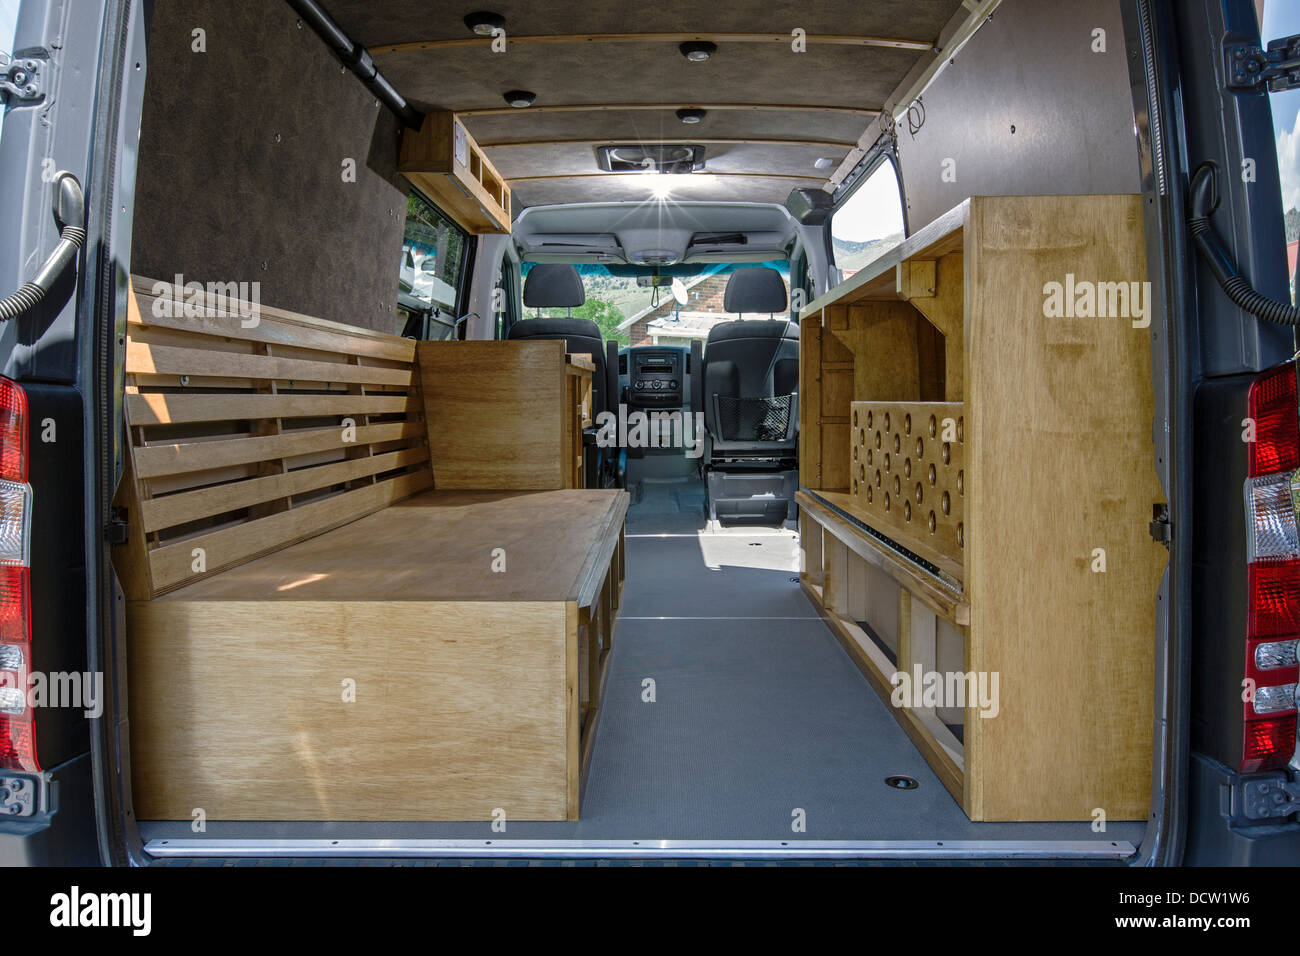 Work Vans Used >> Tour Van Stock Photos & Tour Van Stock Images - Alamy